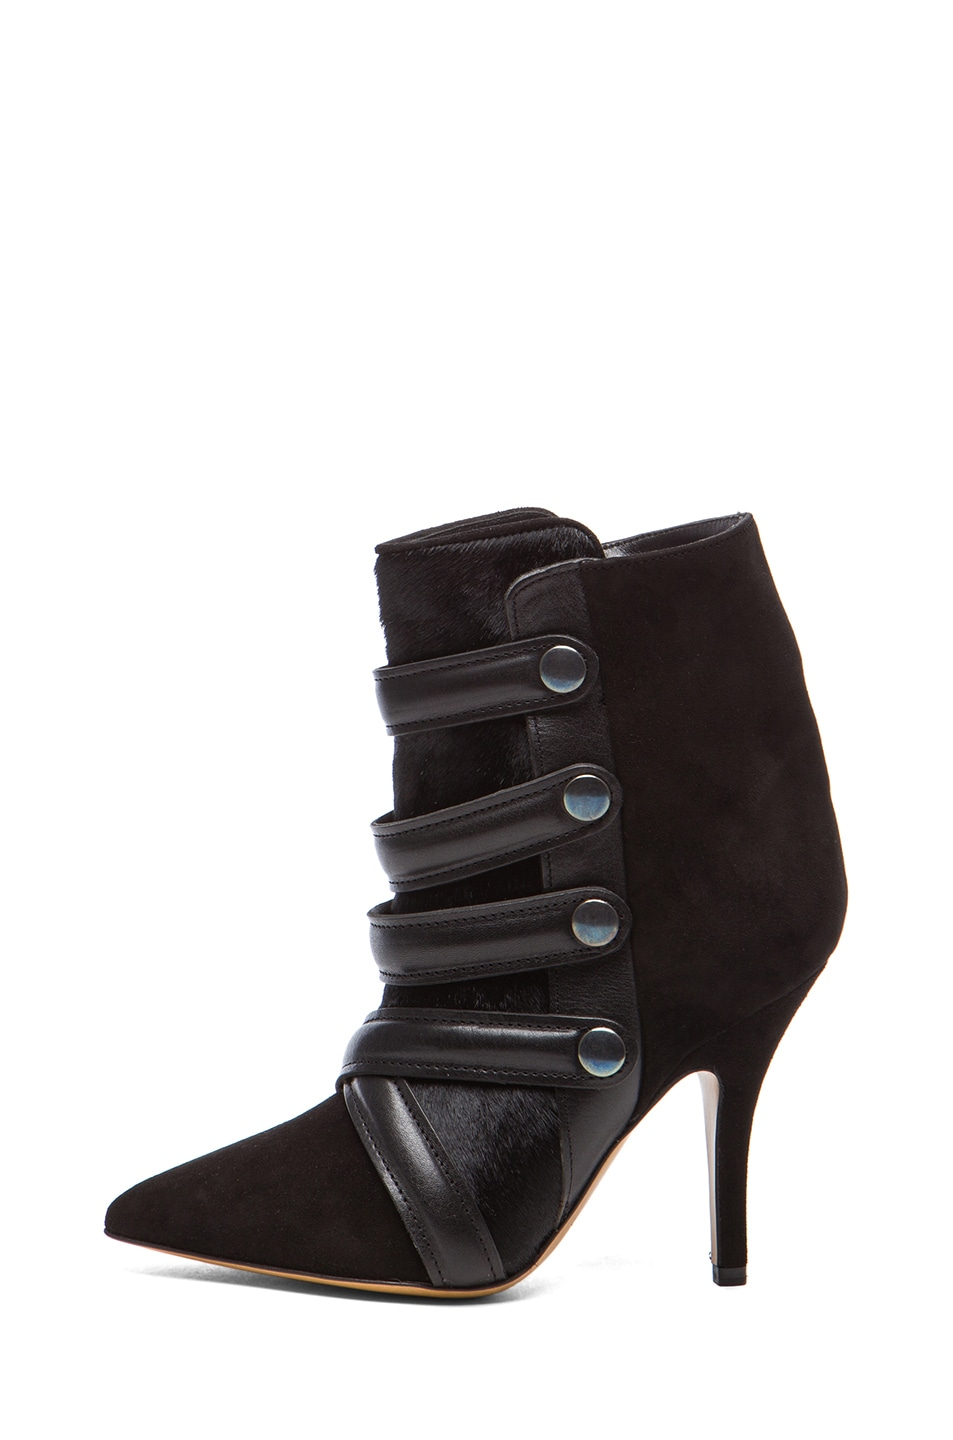 Image 1 of Isabel Marant Tacy Goat Suede Leather Pony Booties in Black